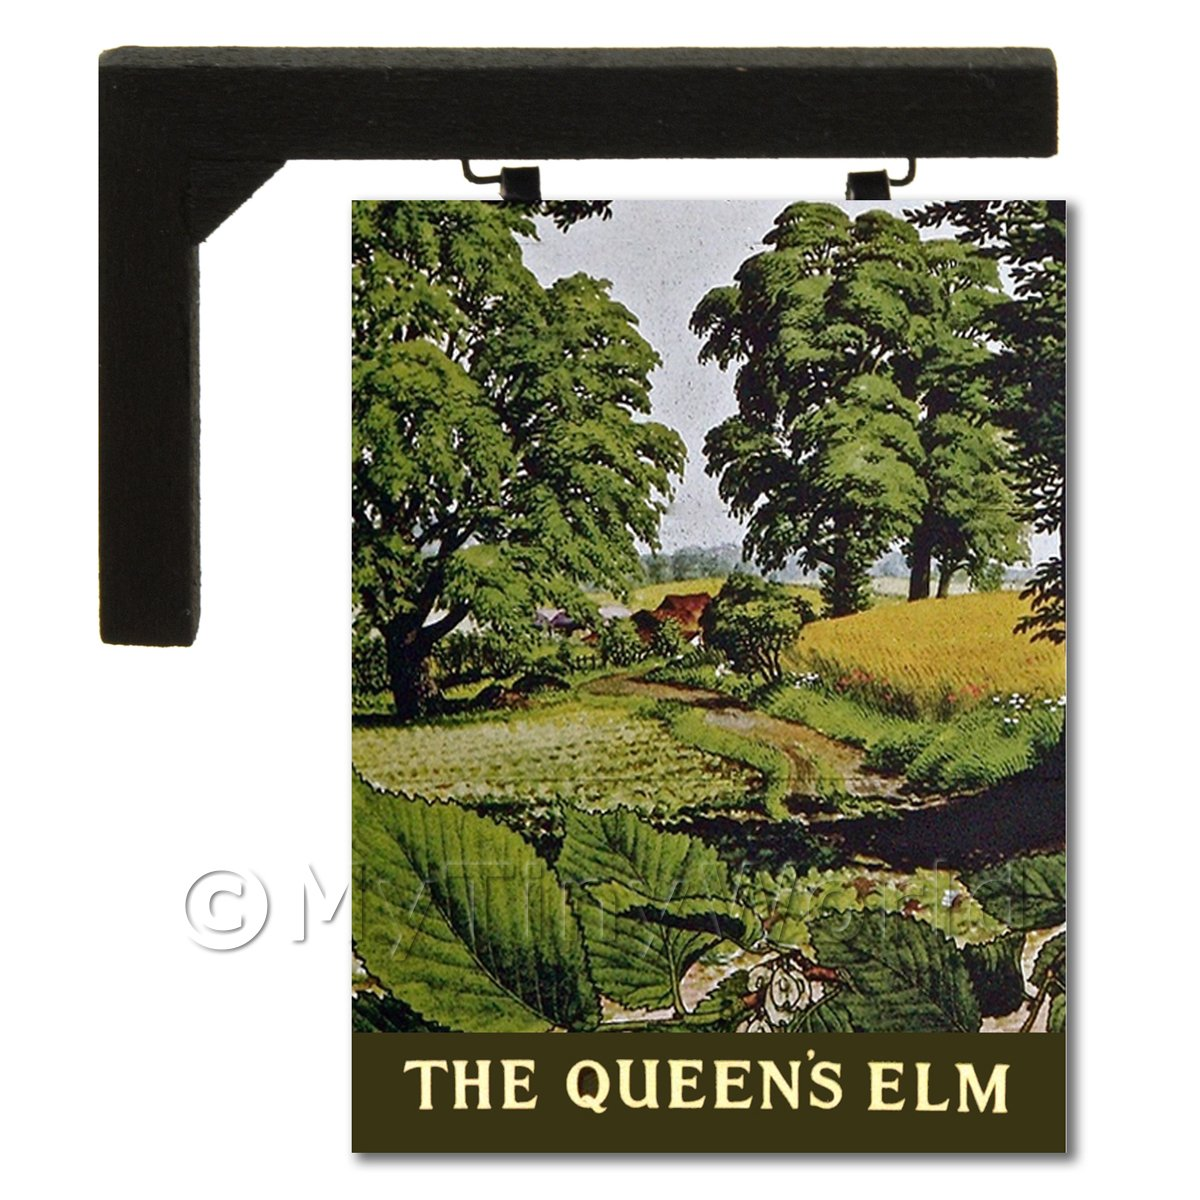 Wall Mounted Dolls House Pub / Tavern Sign - The Queens Elm